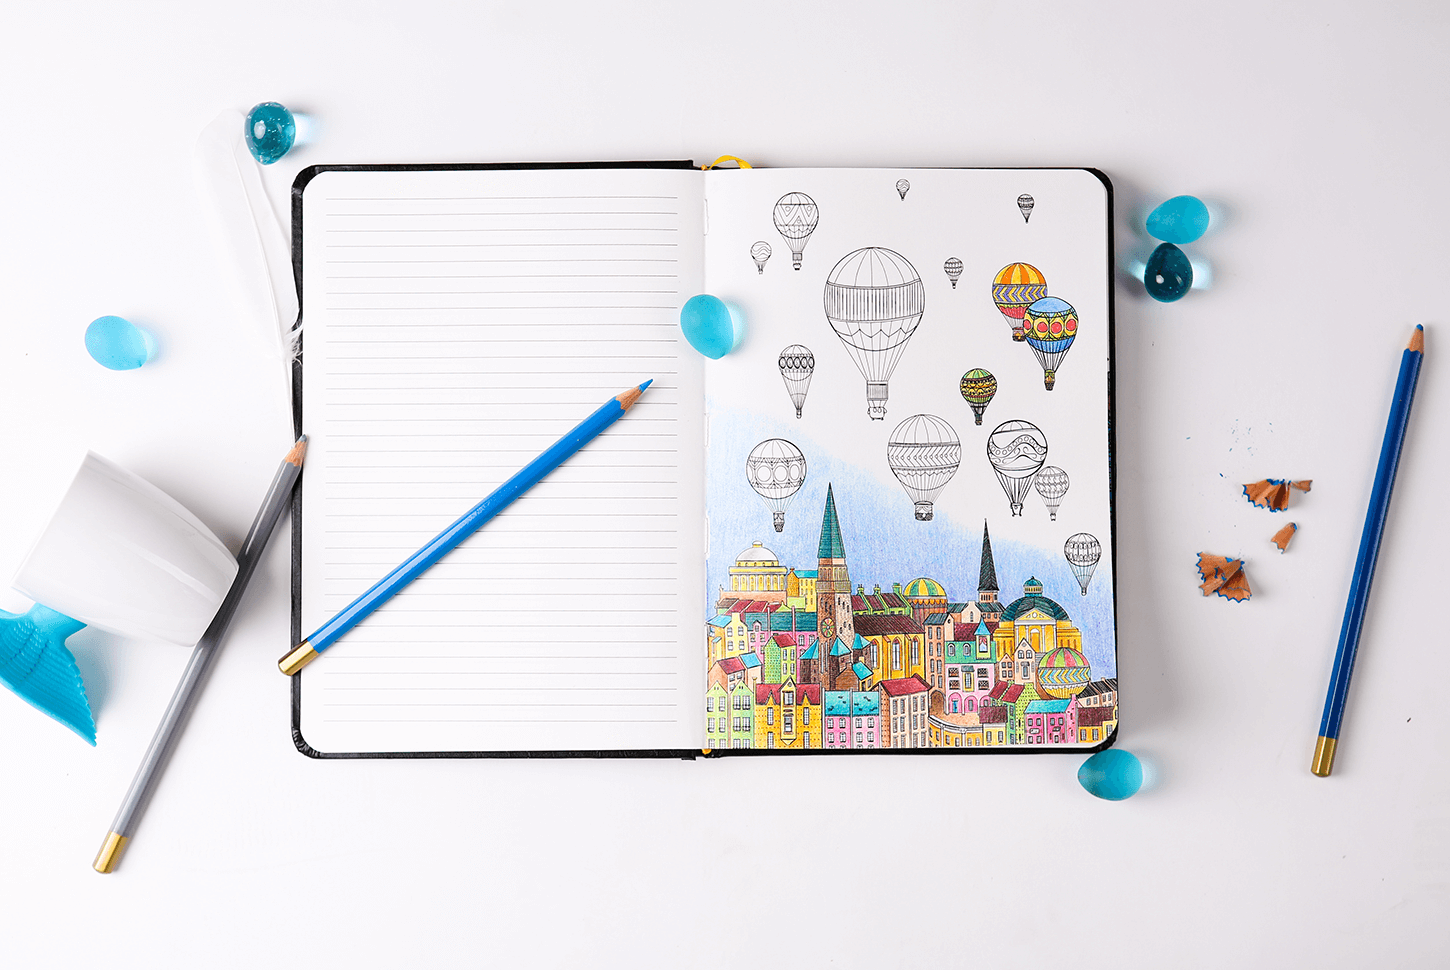 Stress relief coloring books disney - Double Happiness A Notebook Combined With Adult Coloring Book For Stress Relief